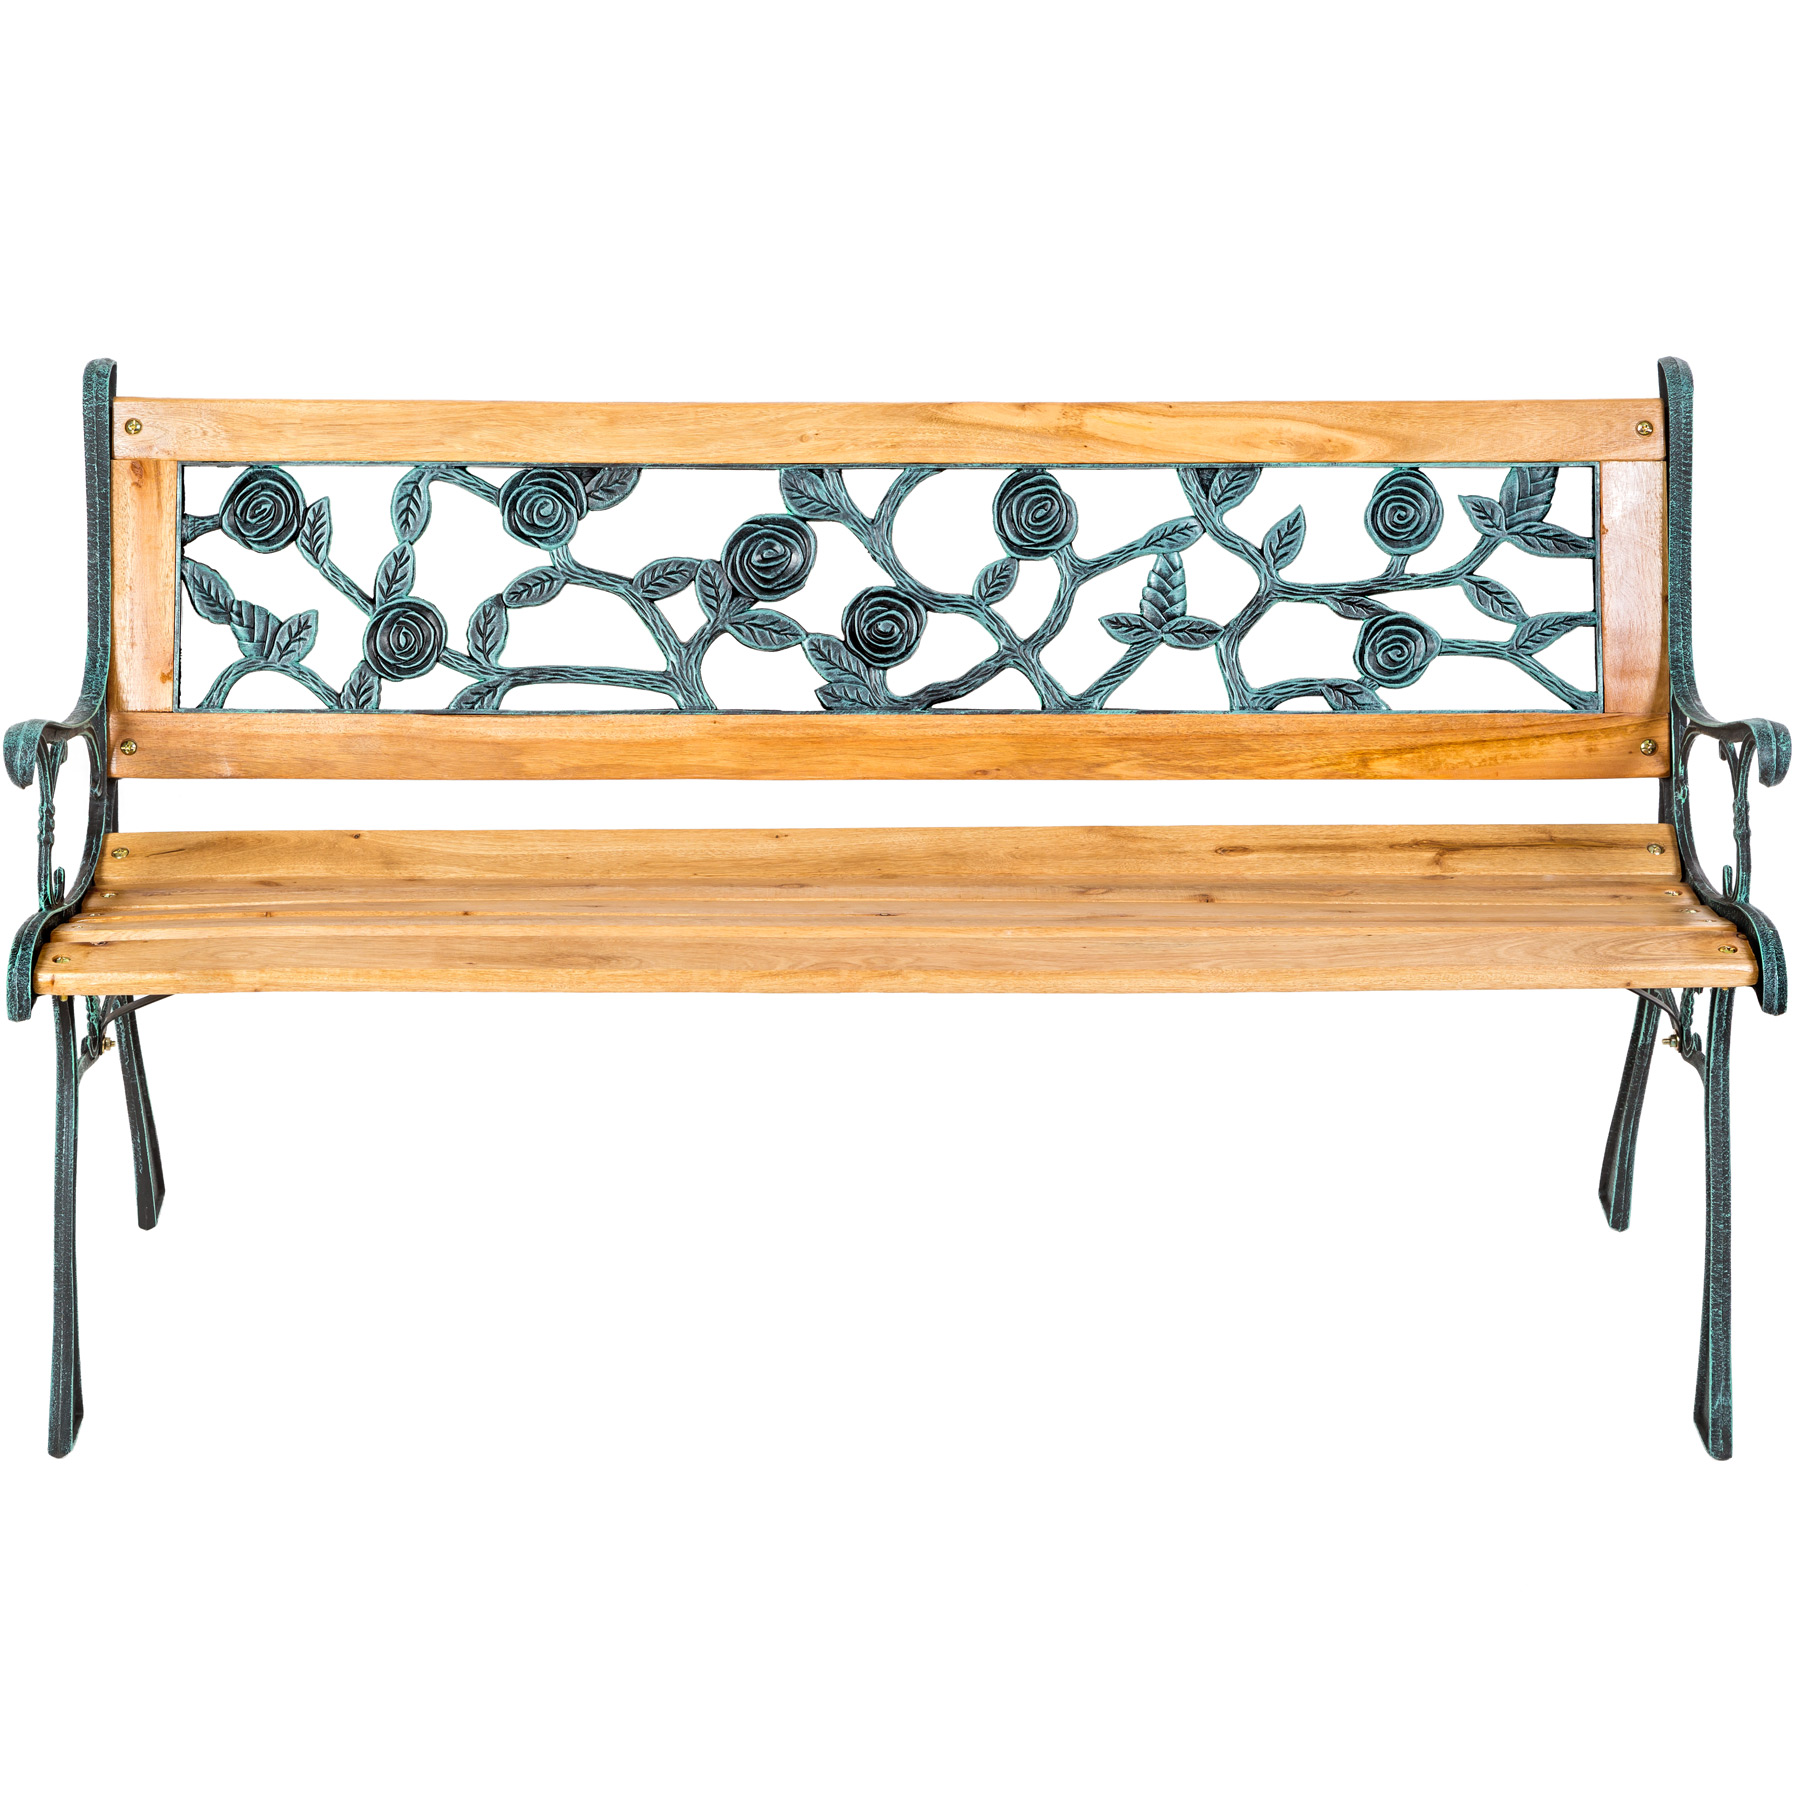 Wooden garden bench slat 3 seat with cast iron legs wood for Banco para jardin